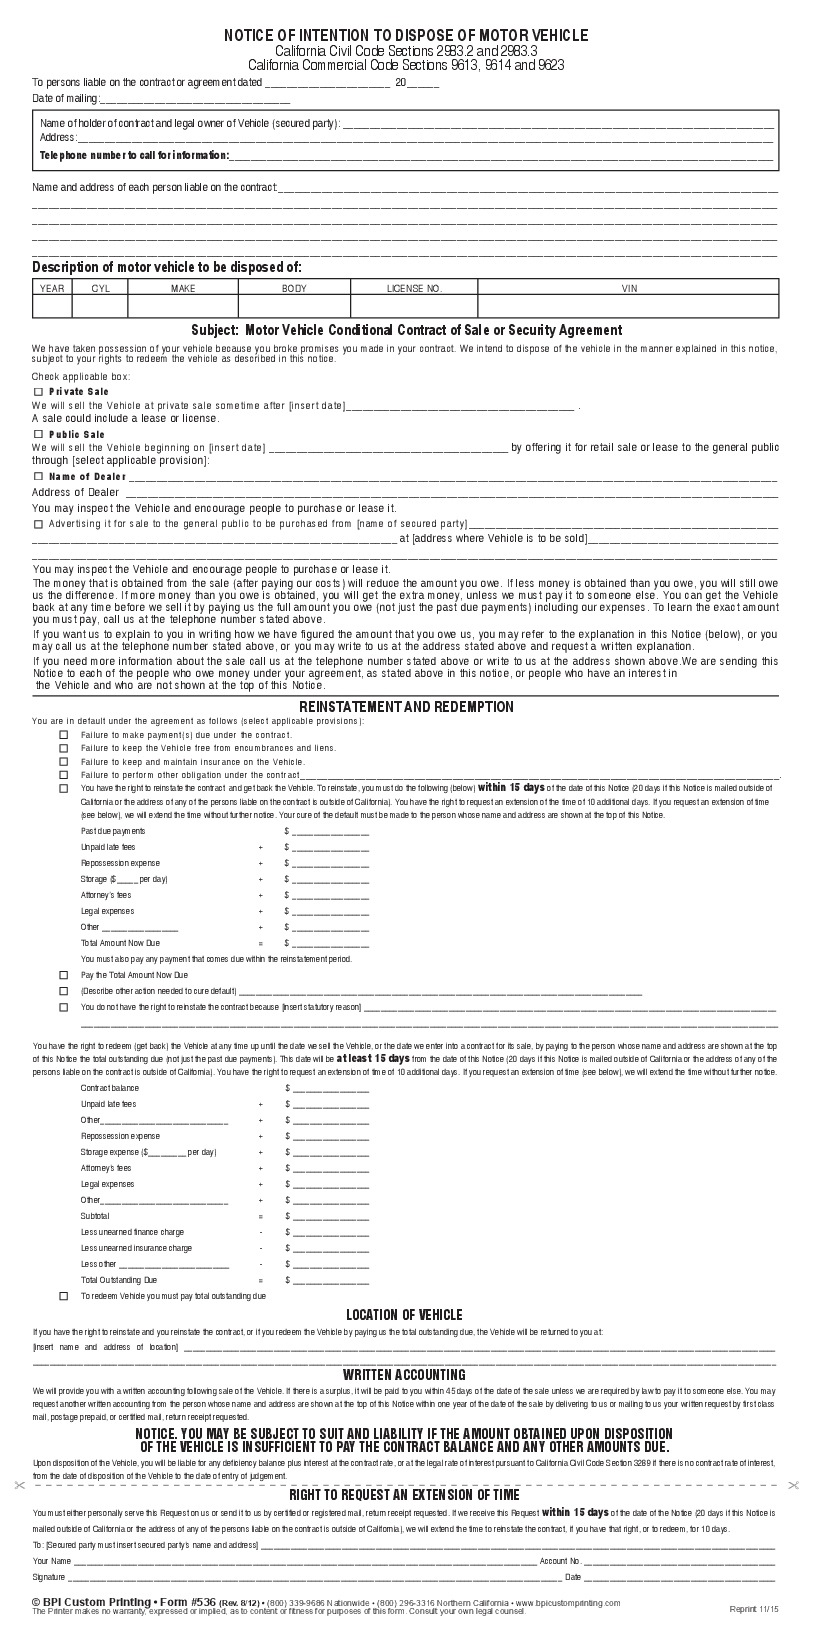 vehicle appraisal form business templates 536 r1508 notice of intention to dispose motor - Vehicle Appraisal Form